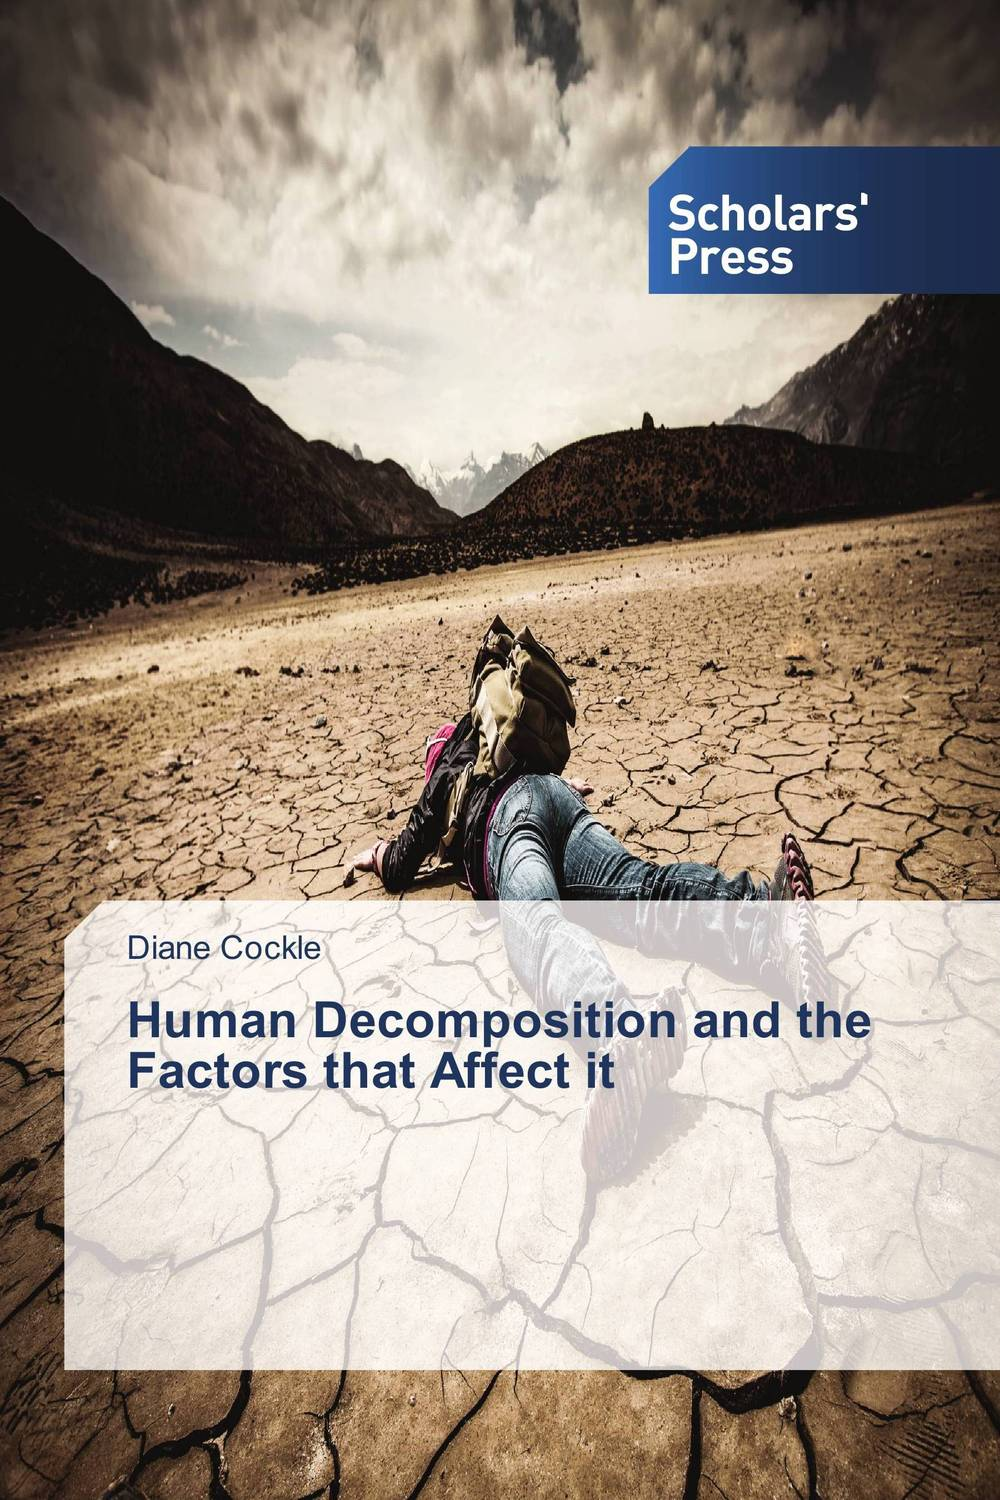 Human Decomposition and the Factors that Affect it hannell across canada – resources